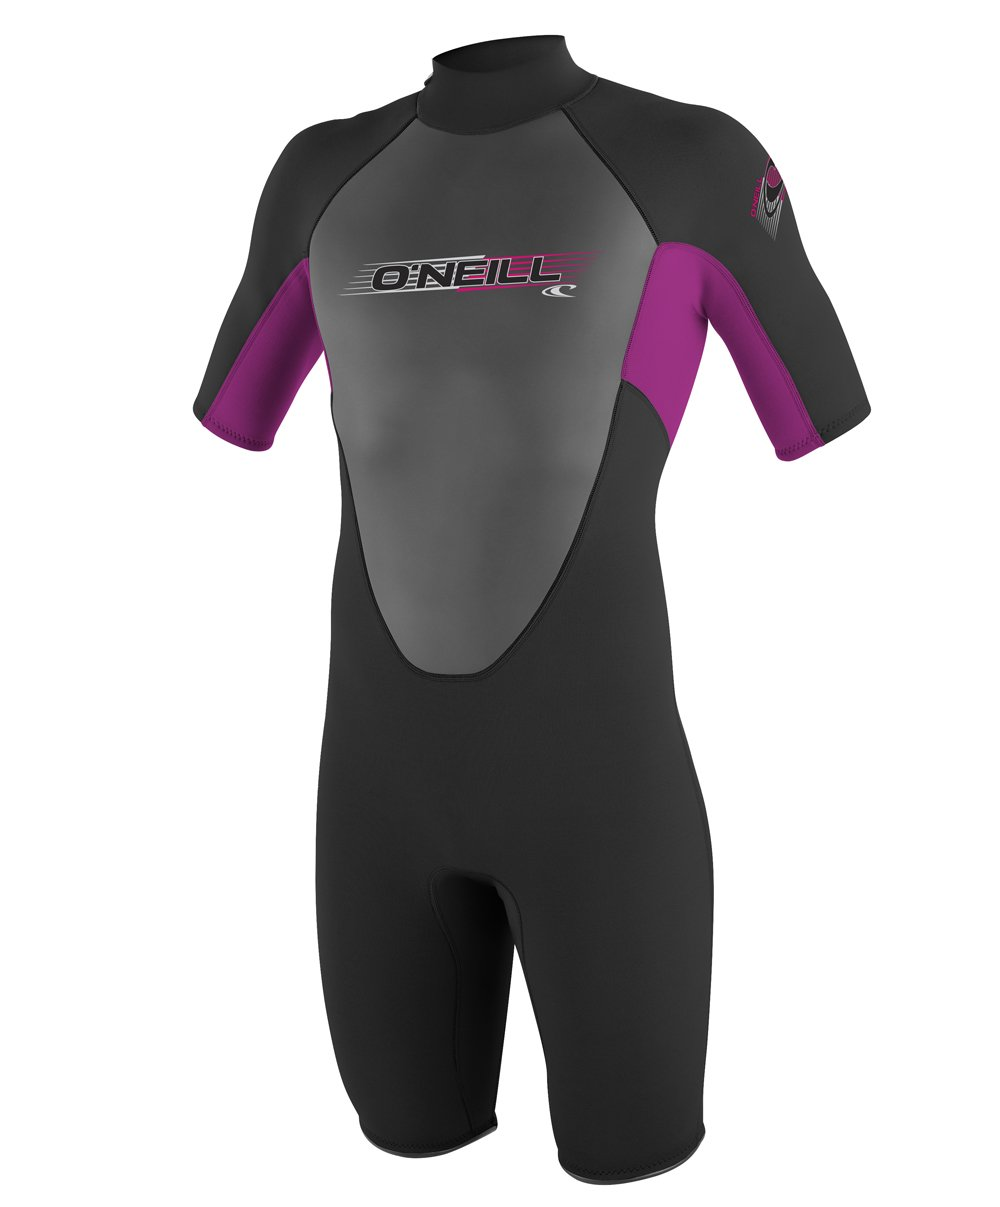 O'Neill Youth Reactor 2mm Back Zip Spring Wetsuit, Black/Pink/Black, 4 by O'Neill Wetsuits